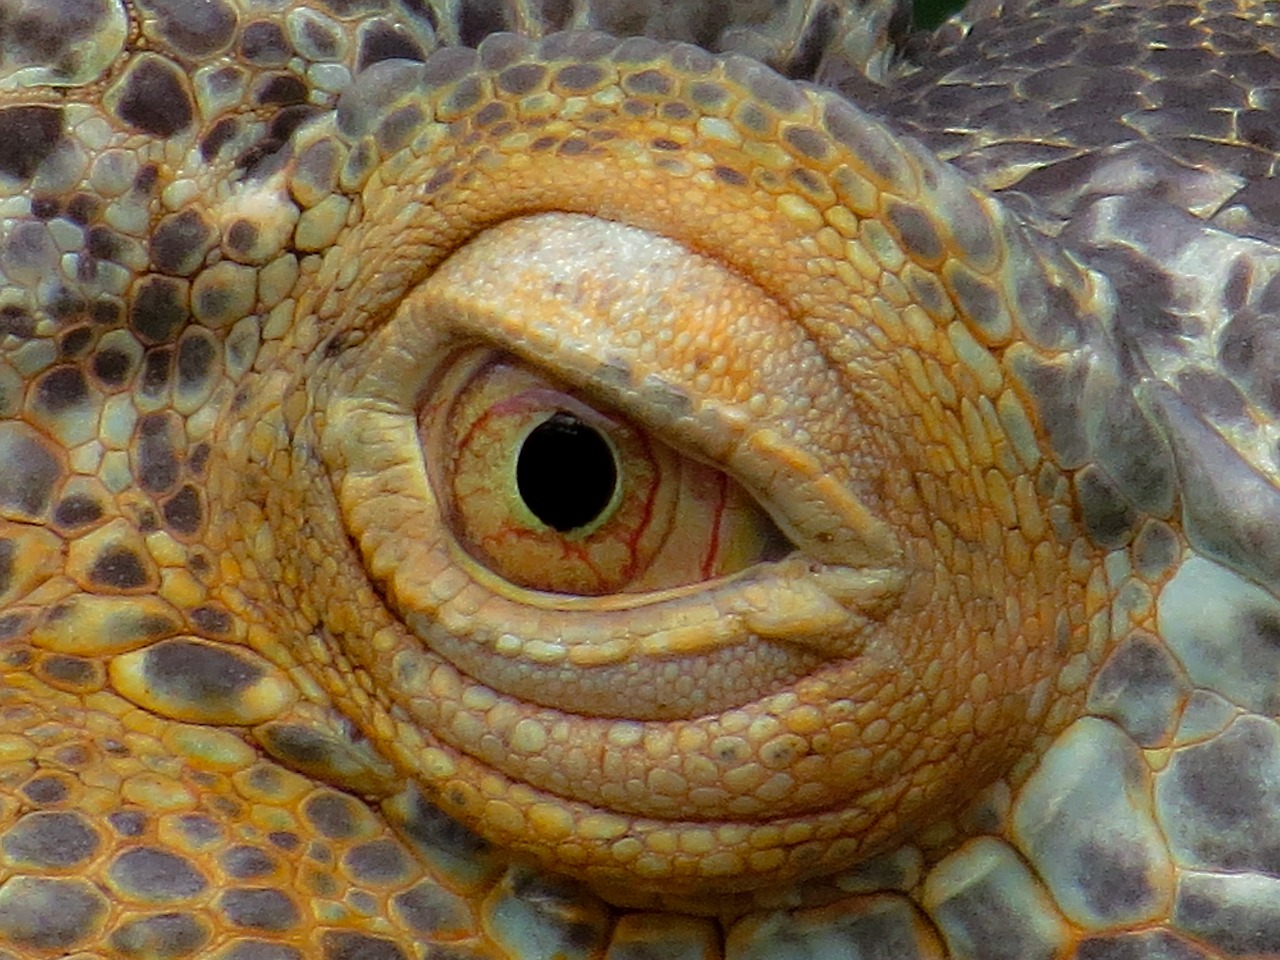 Ten Fascinating Facts About Reptiles